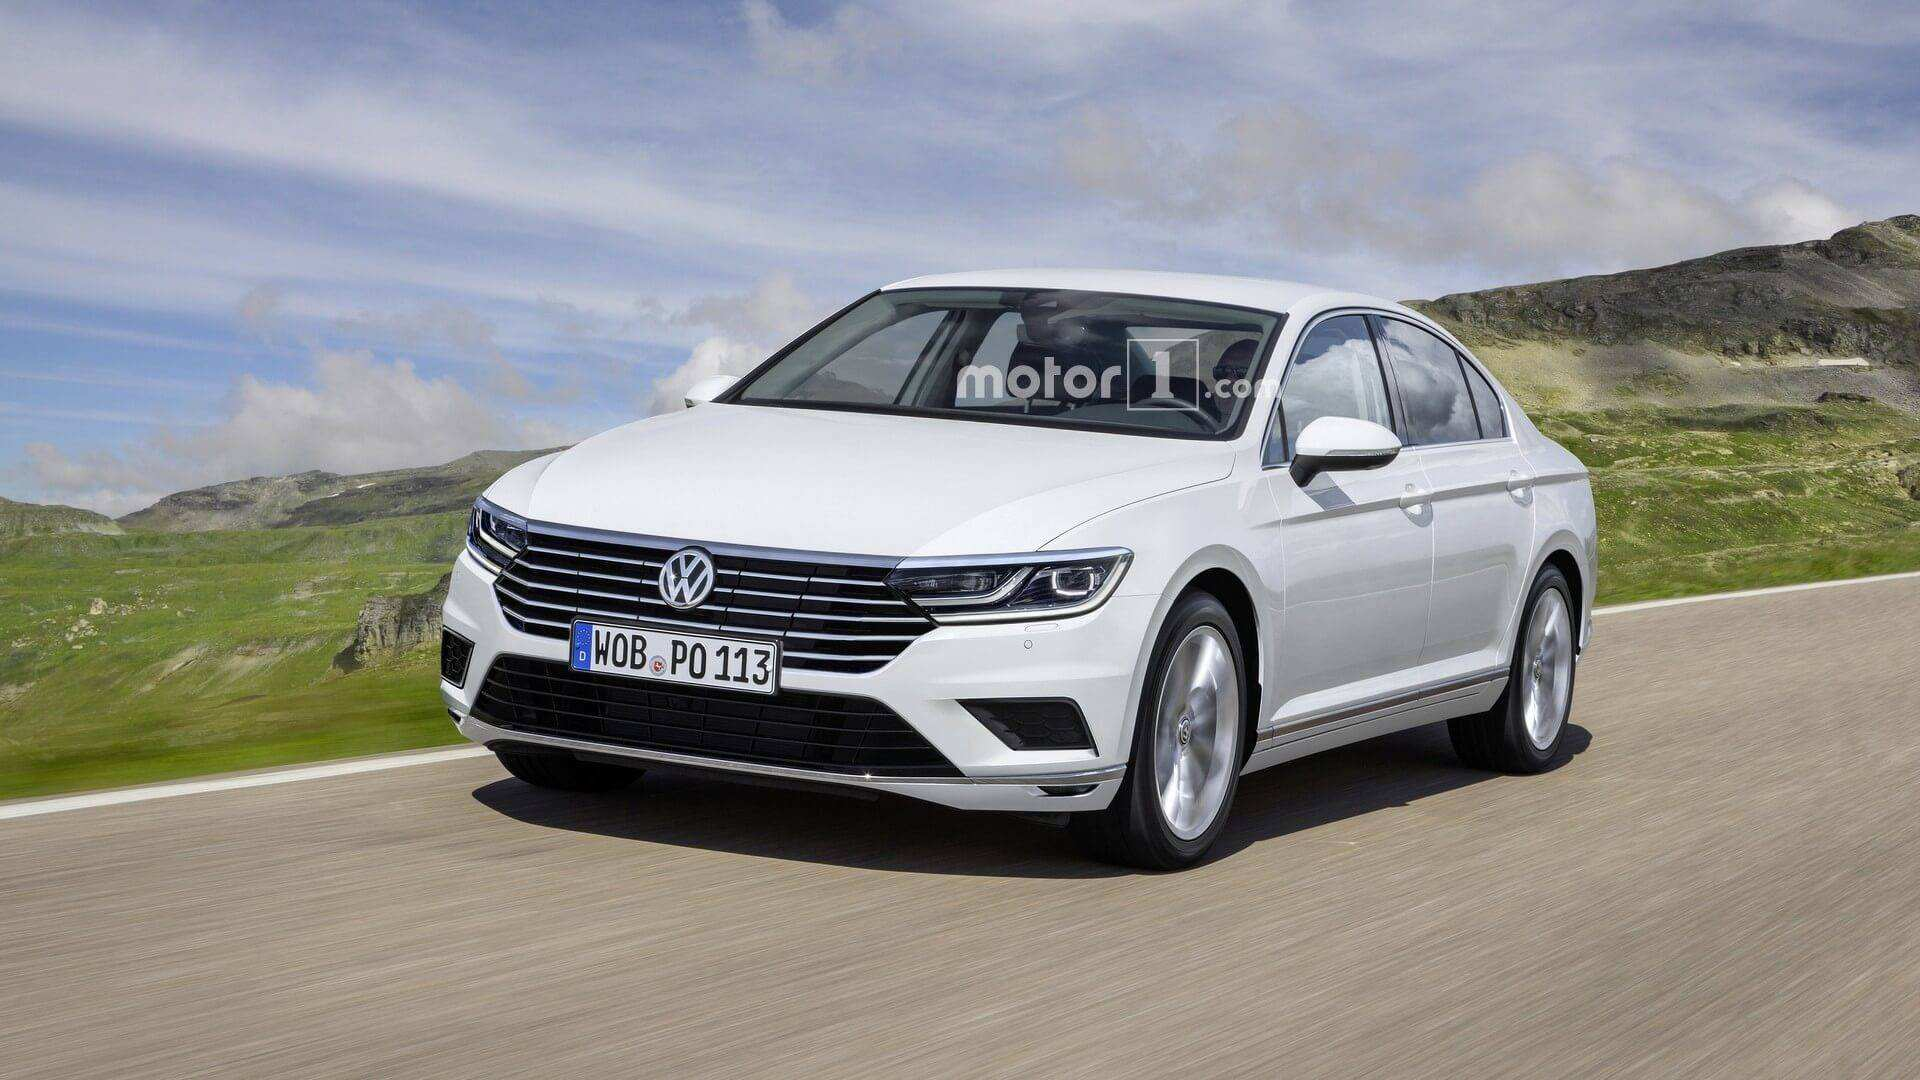 97 The Best 2019 Volkswagen CC New Model And Performance